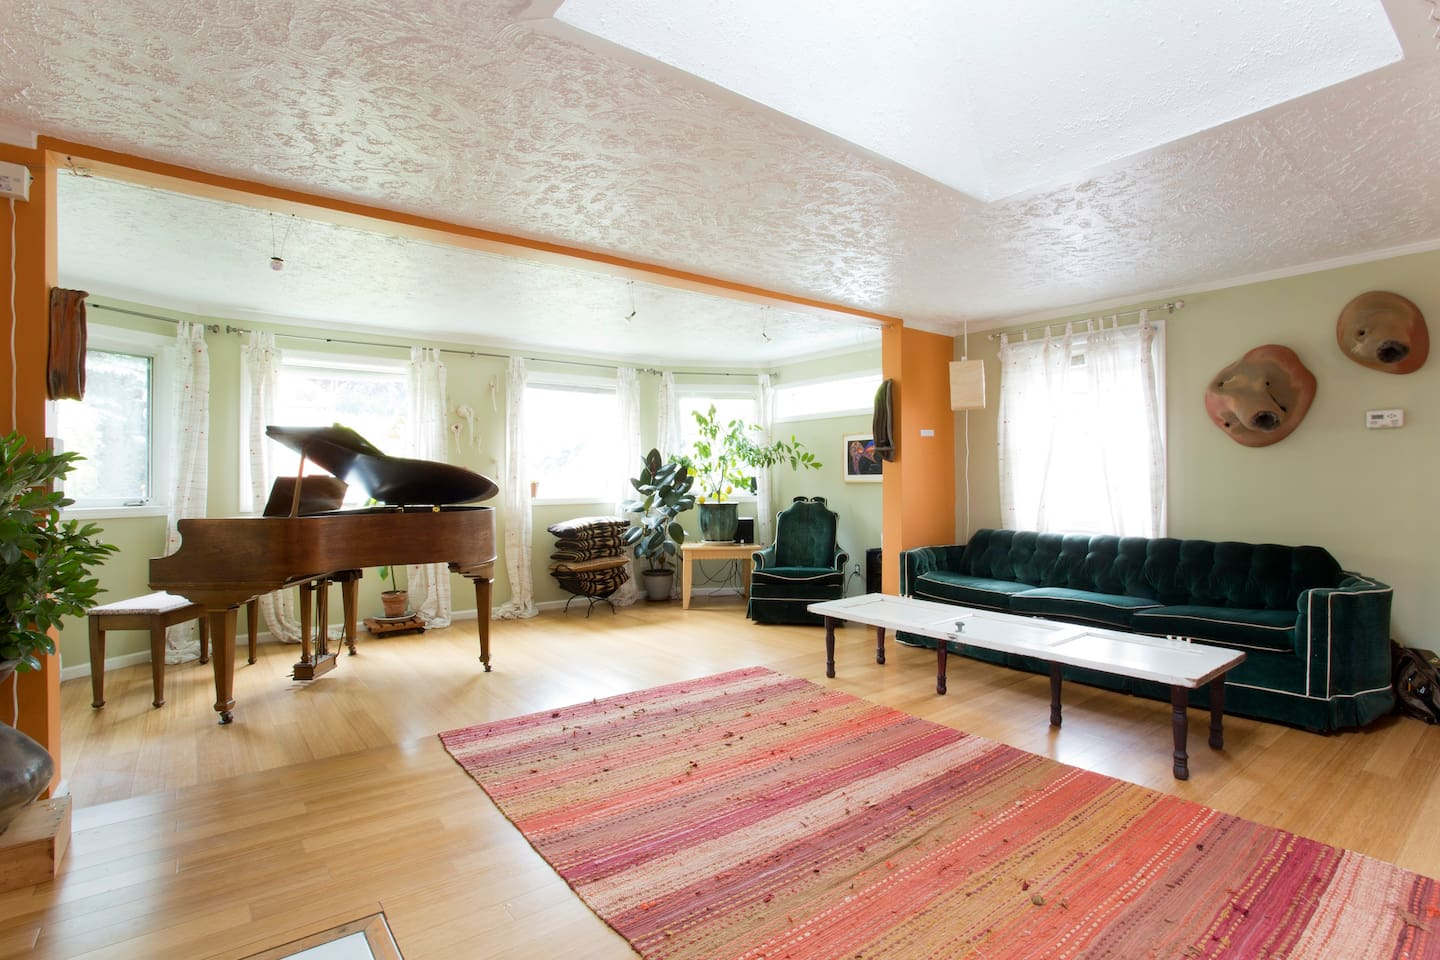 Living Room Gallery and Musical Space. We host House-Concerts and Art Shows here...